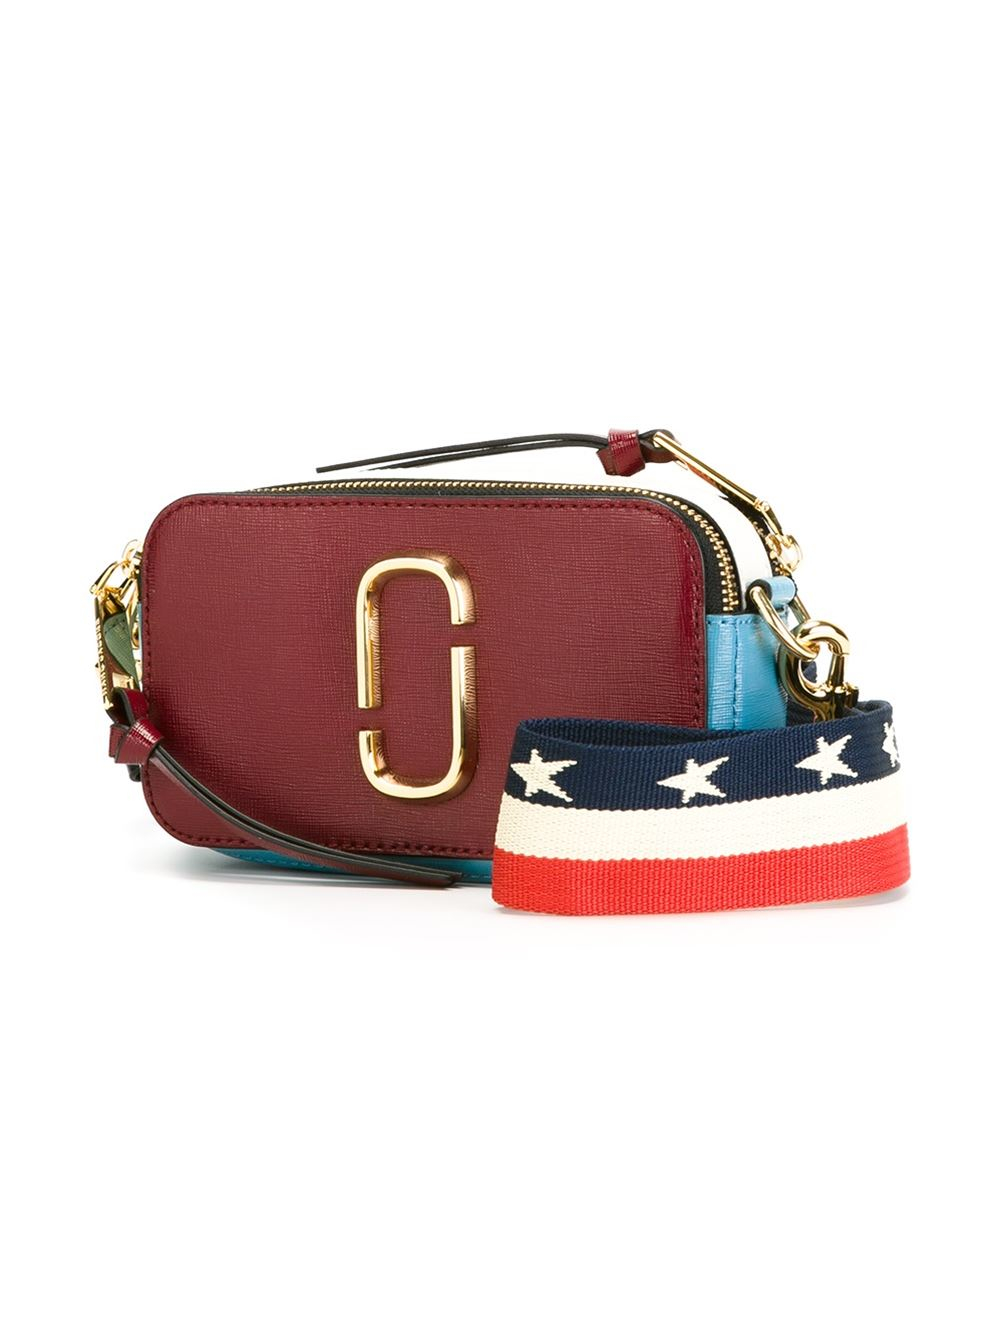 bb23ffc3c0a Are Marc Jacobs Bags Made In Vietnam | Stanford Center for ...